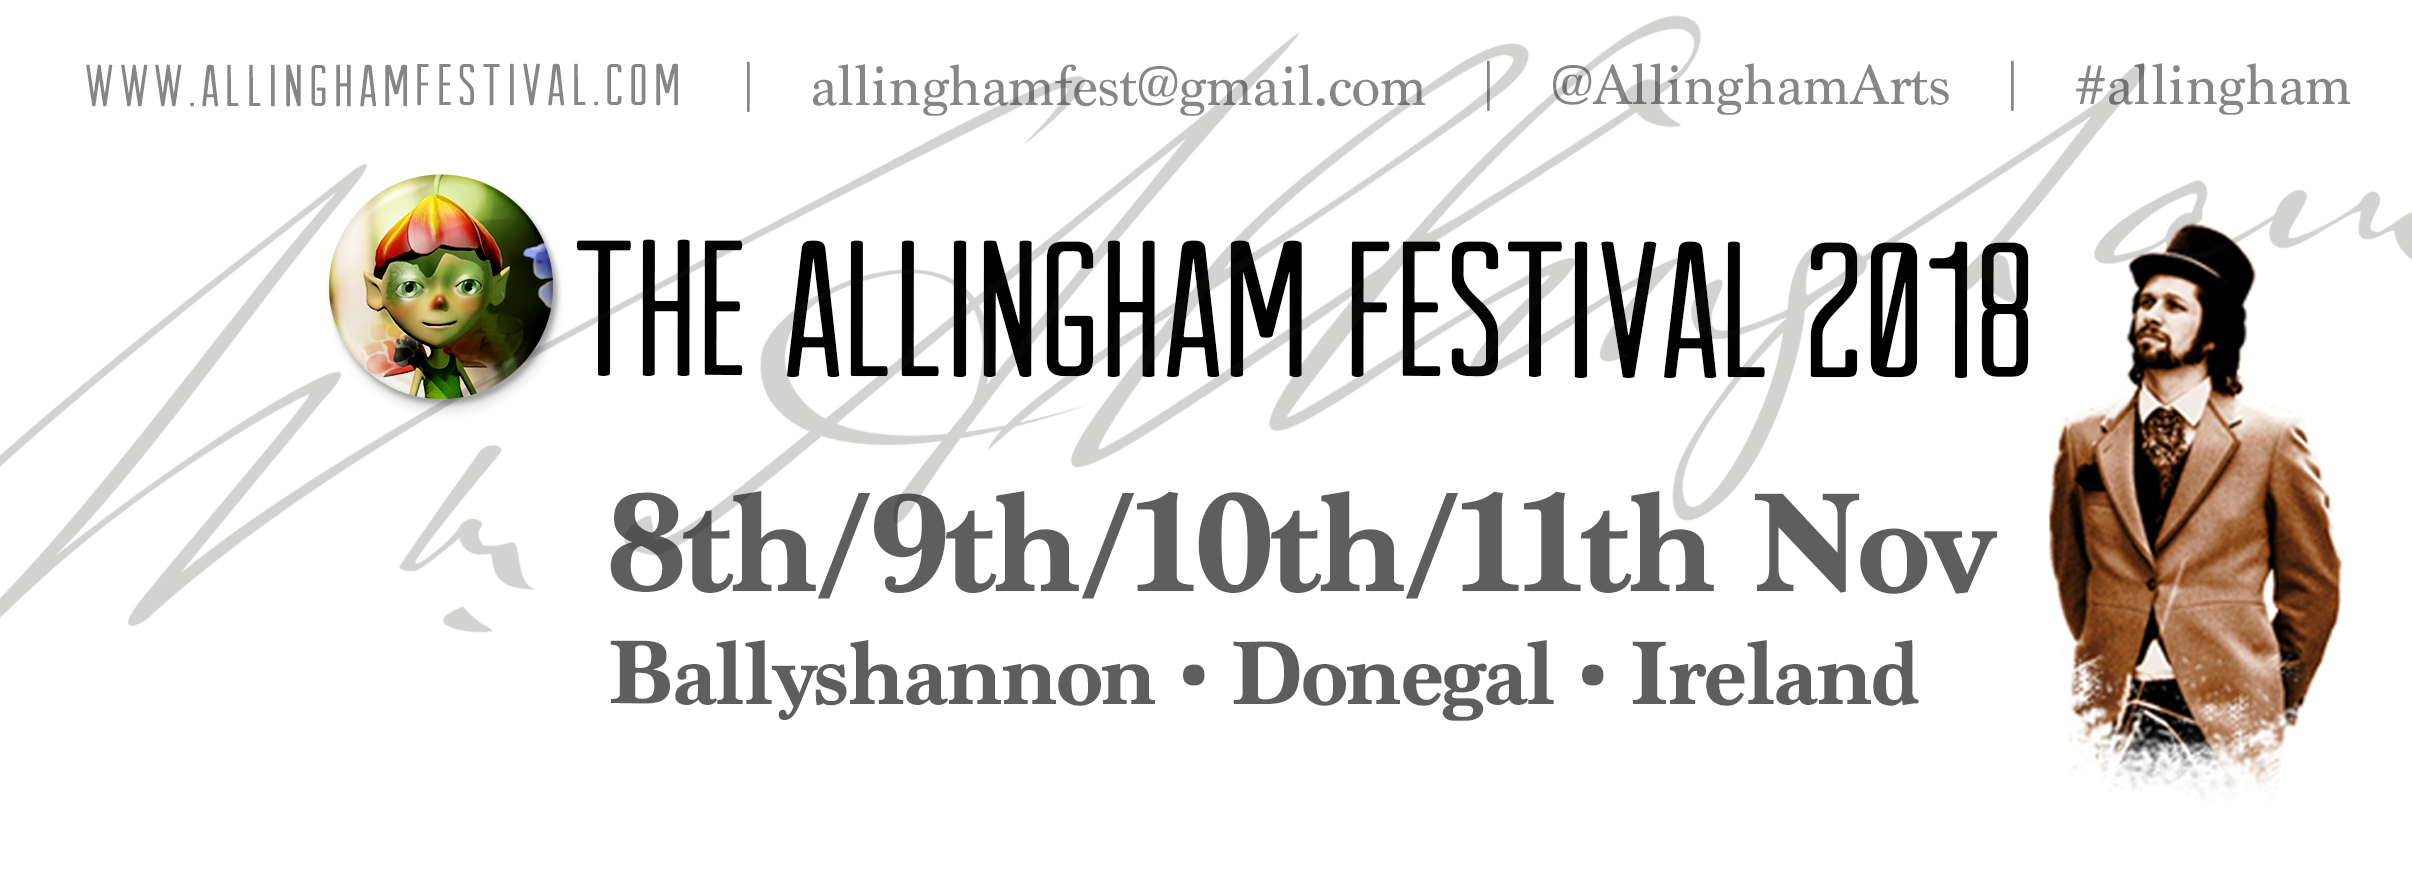 allingham_facebook_header_2018 copy.png